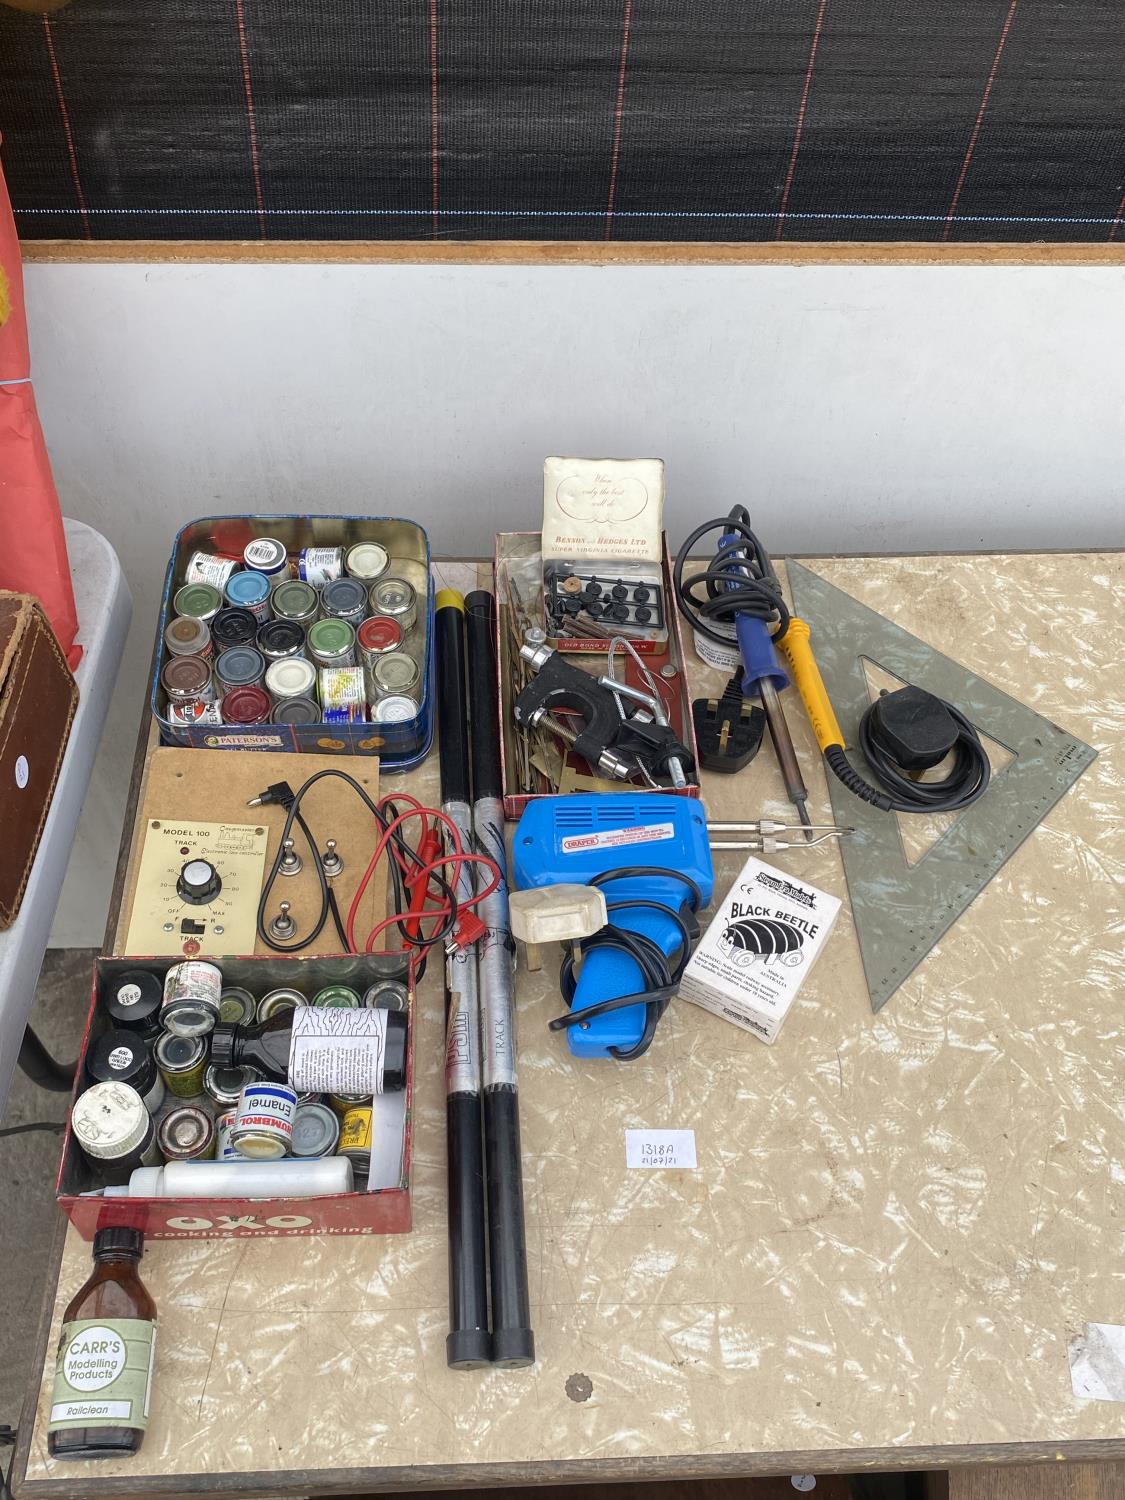 AN ASSORTMENT OF ARTS AND CRAFTS EQUIPMENT TO INCLUDE SOLDERING IRONS, A CLAMP AND MODEL PAINT AND